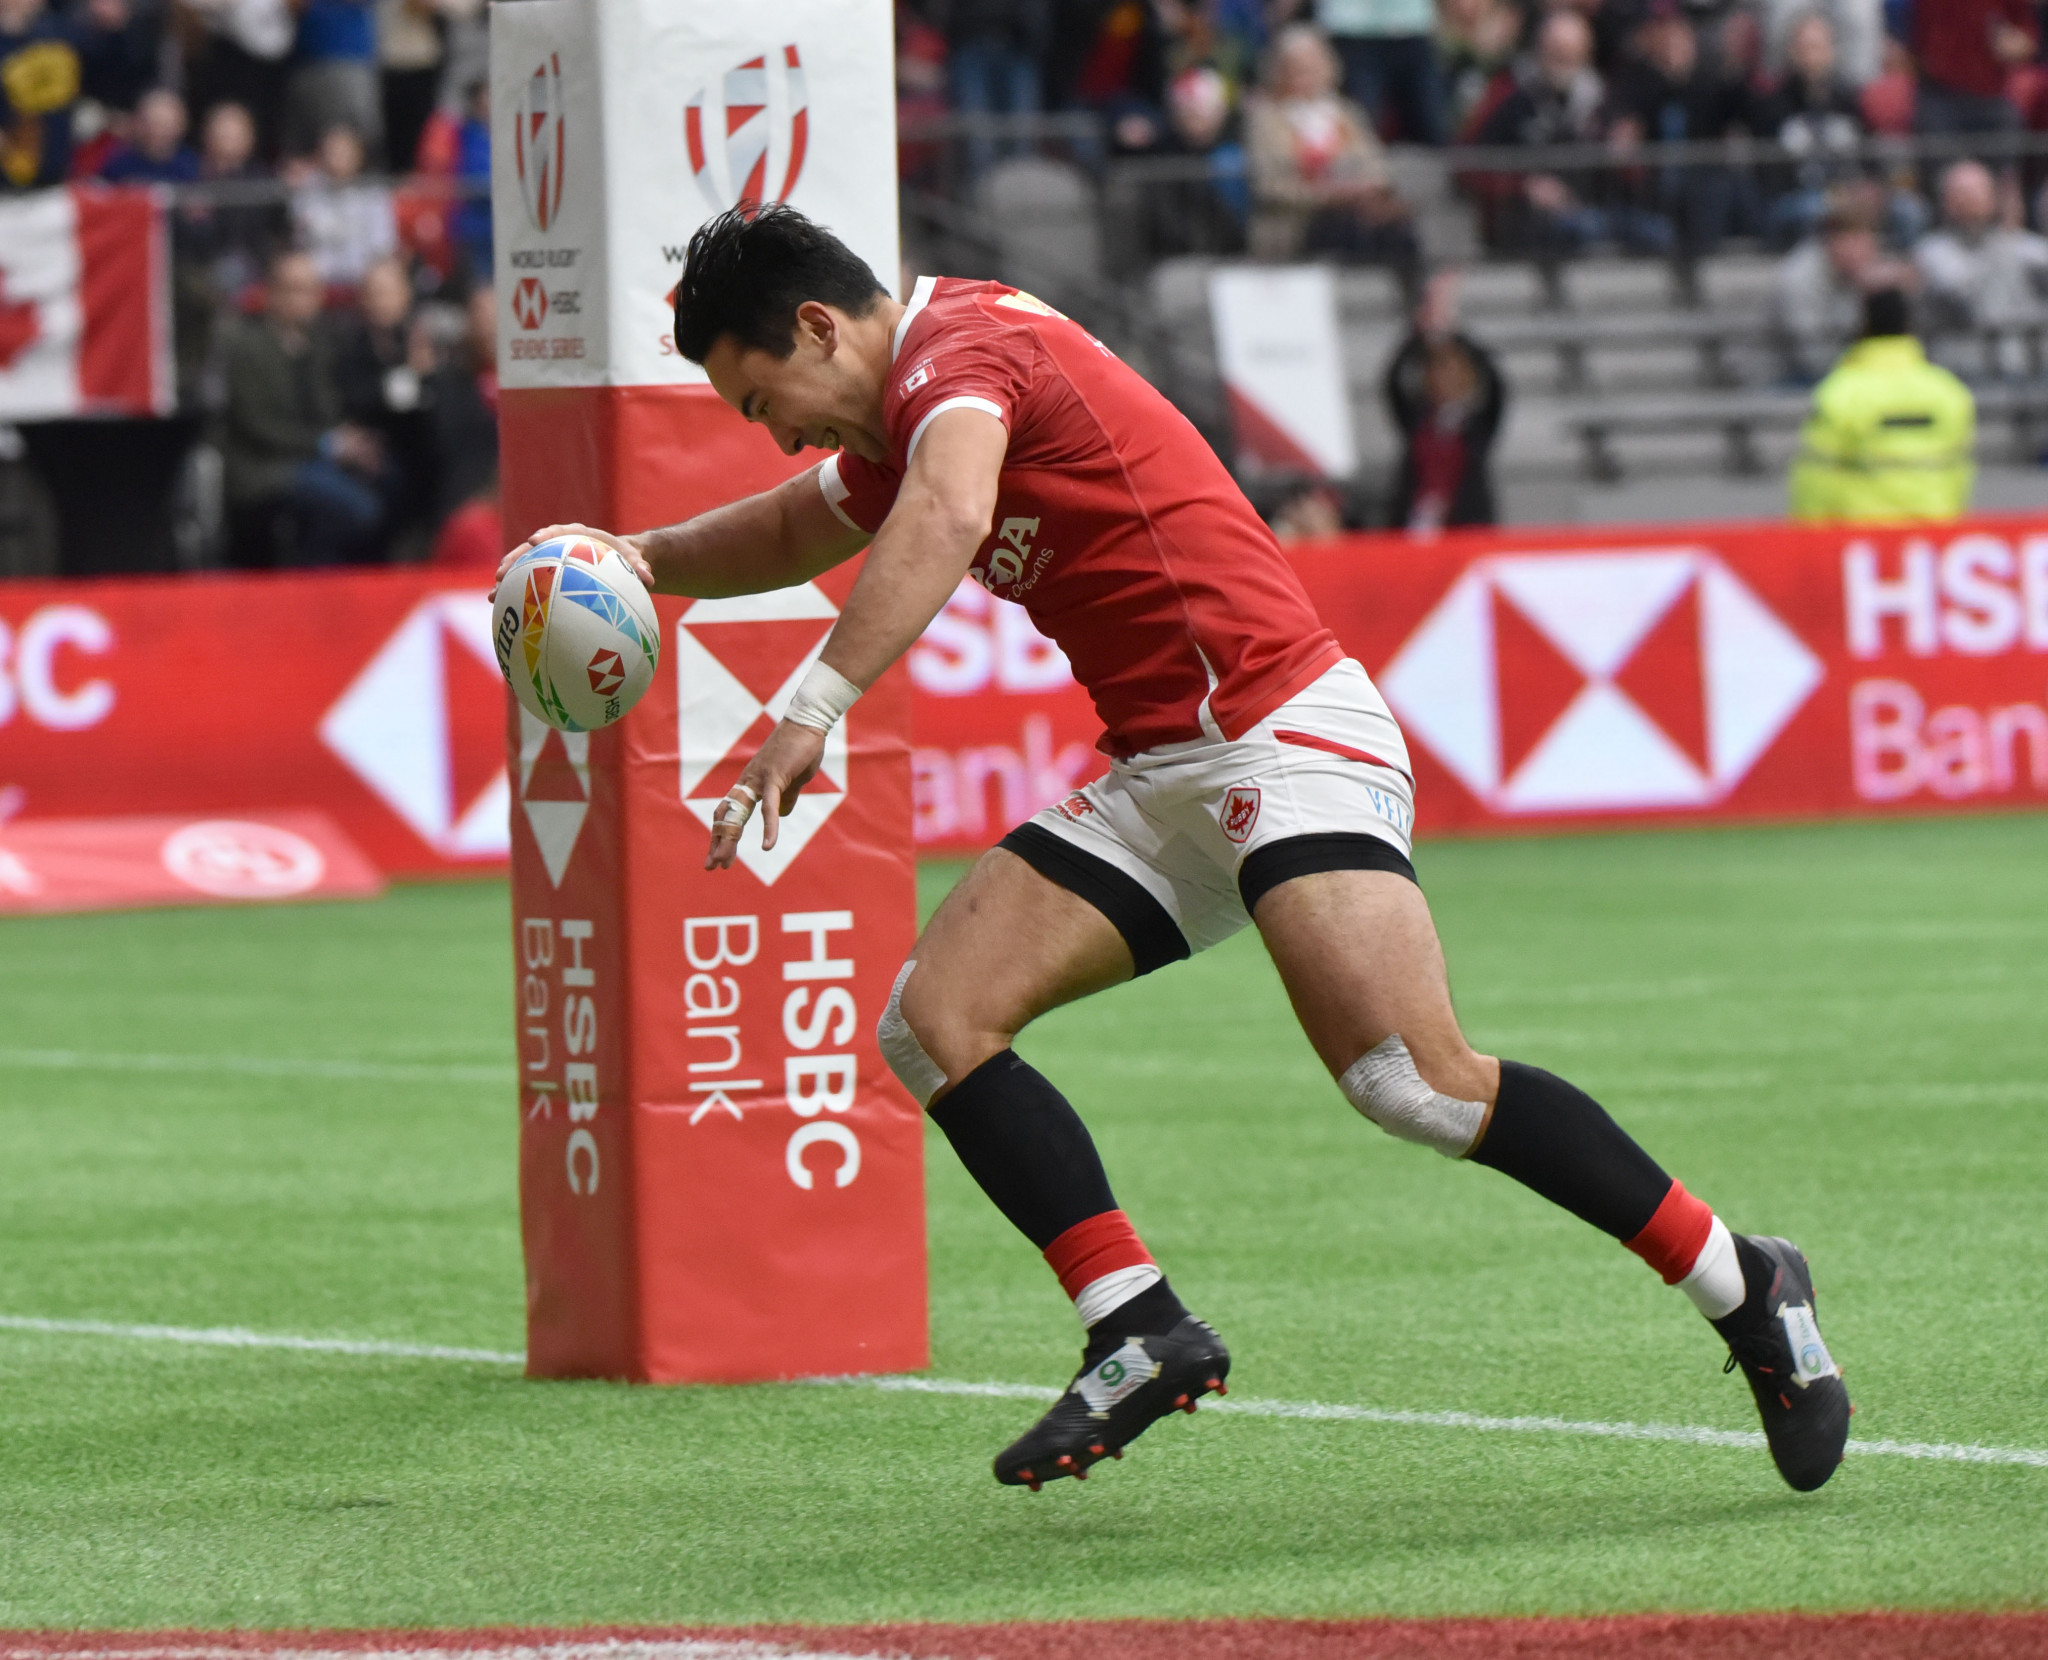 Canada impress at home World Rugby Sevens Series